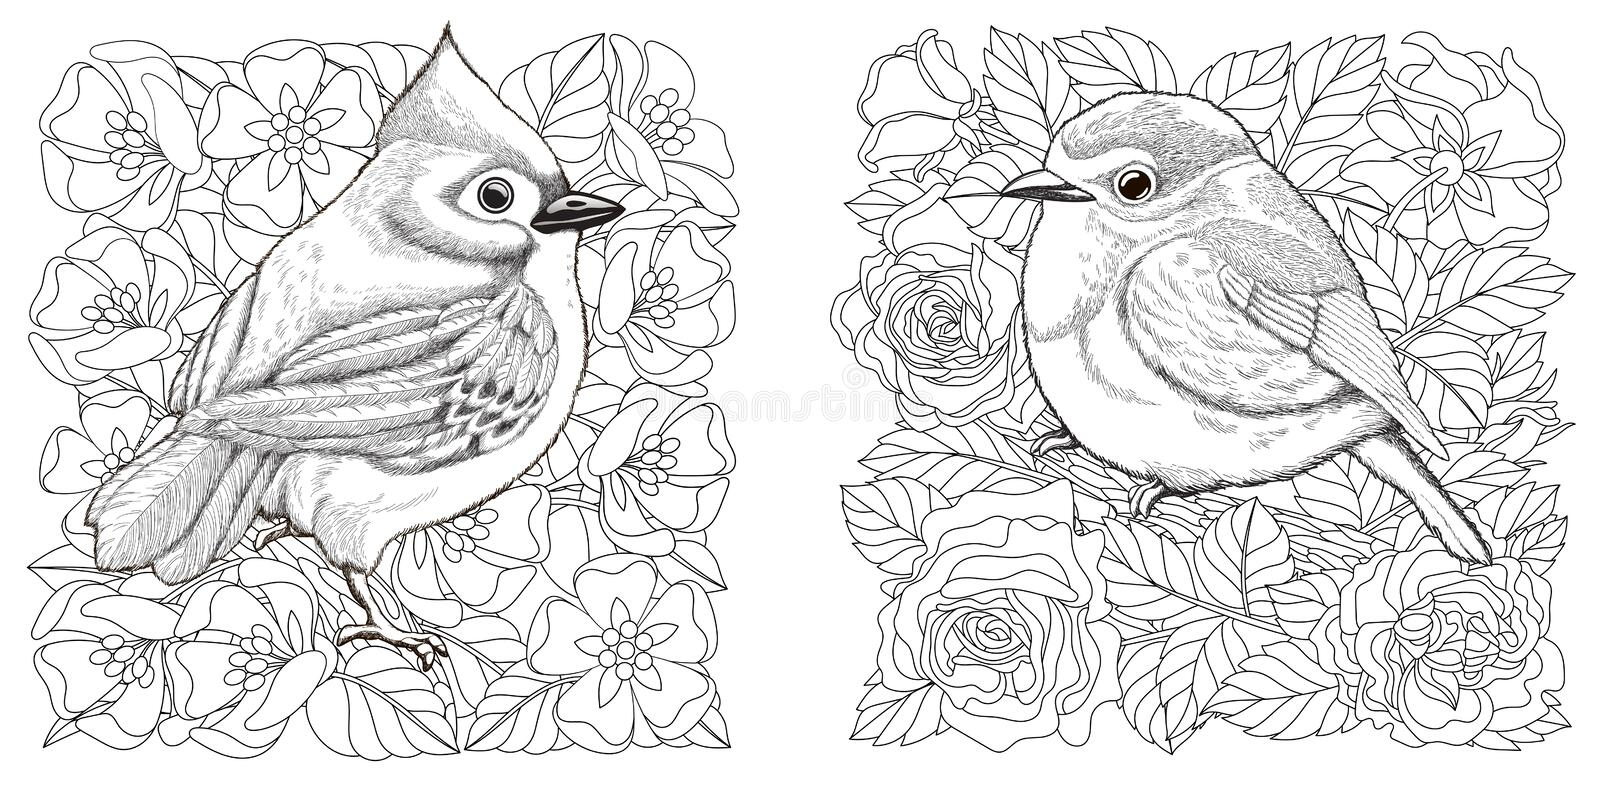 Coloring Pages With Birds And Flowers Stock Vector Illustration Of Flourish Birds 188317590